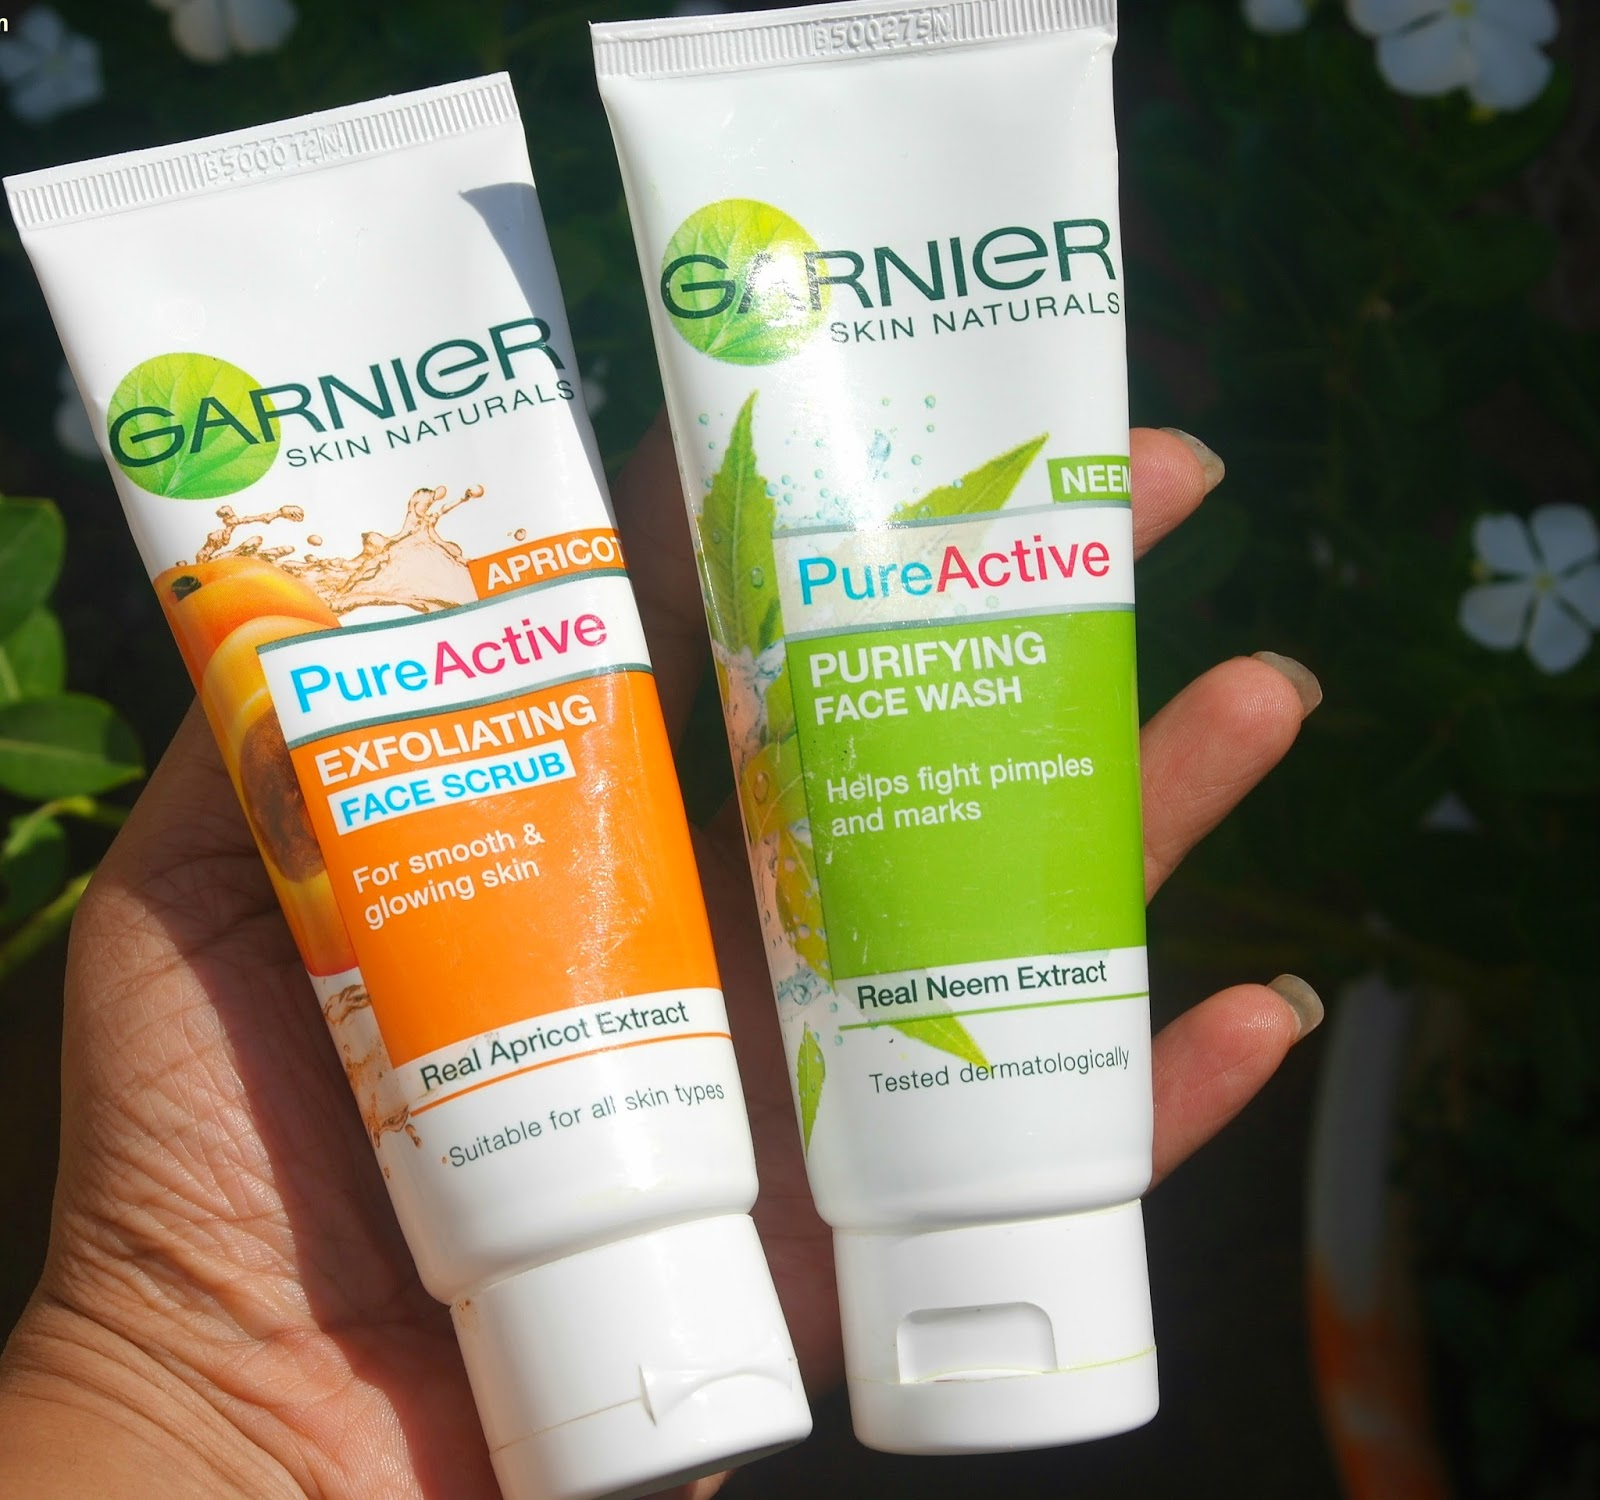 The Garnier Pure Active Neem facewash and Apricot Scrub.